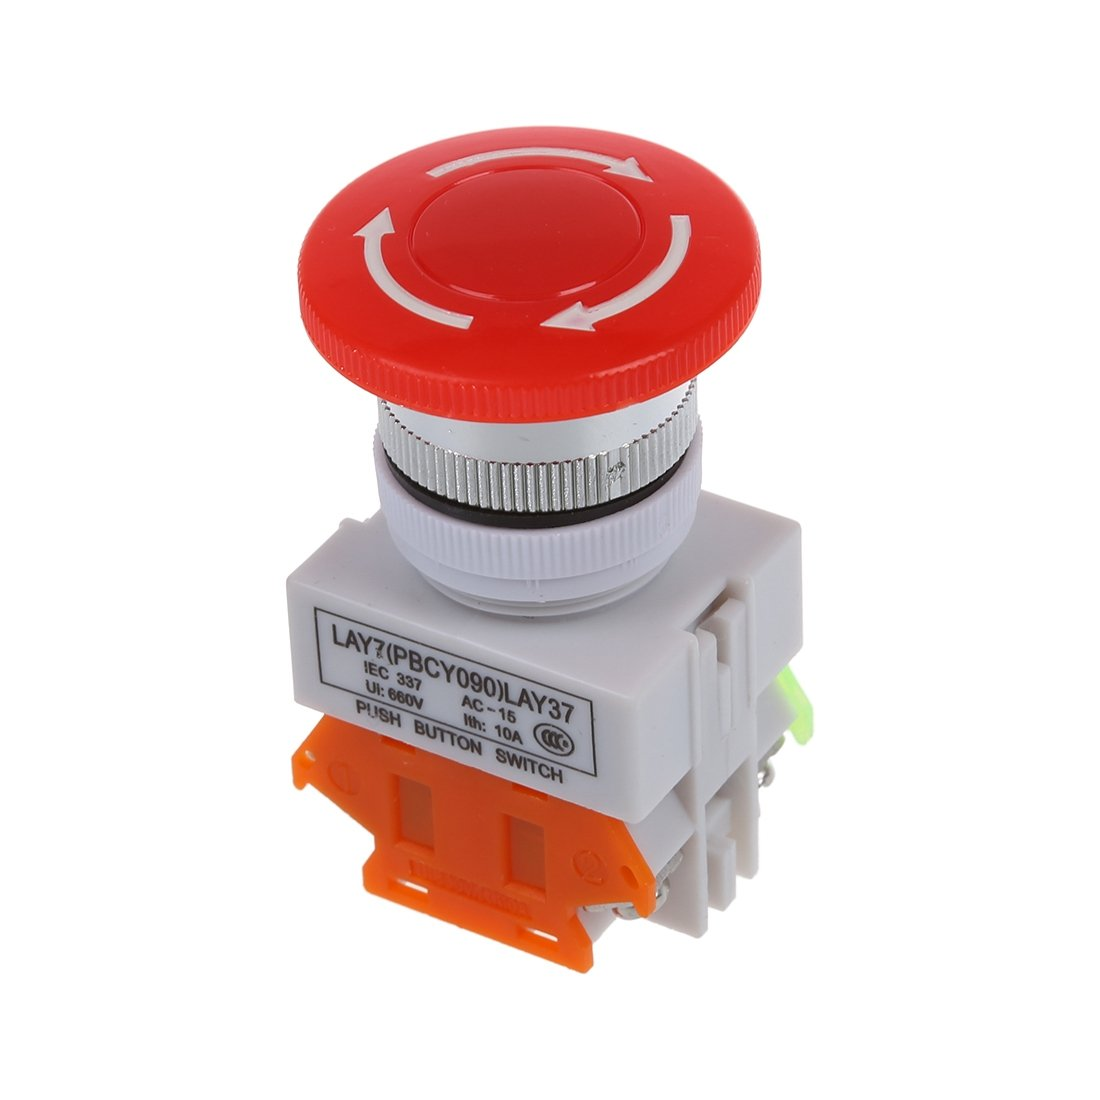 TOOGOO(R) Ui 600V Ith 10A Switch Emergency Stop push button Mushroom